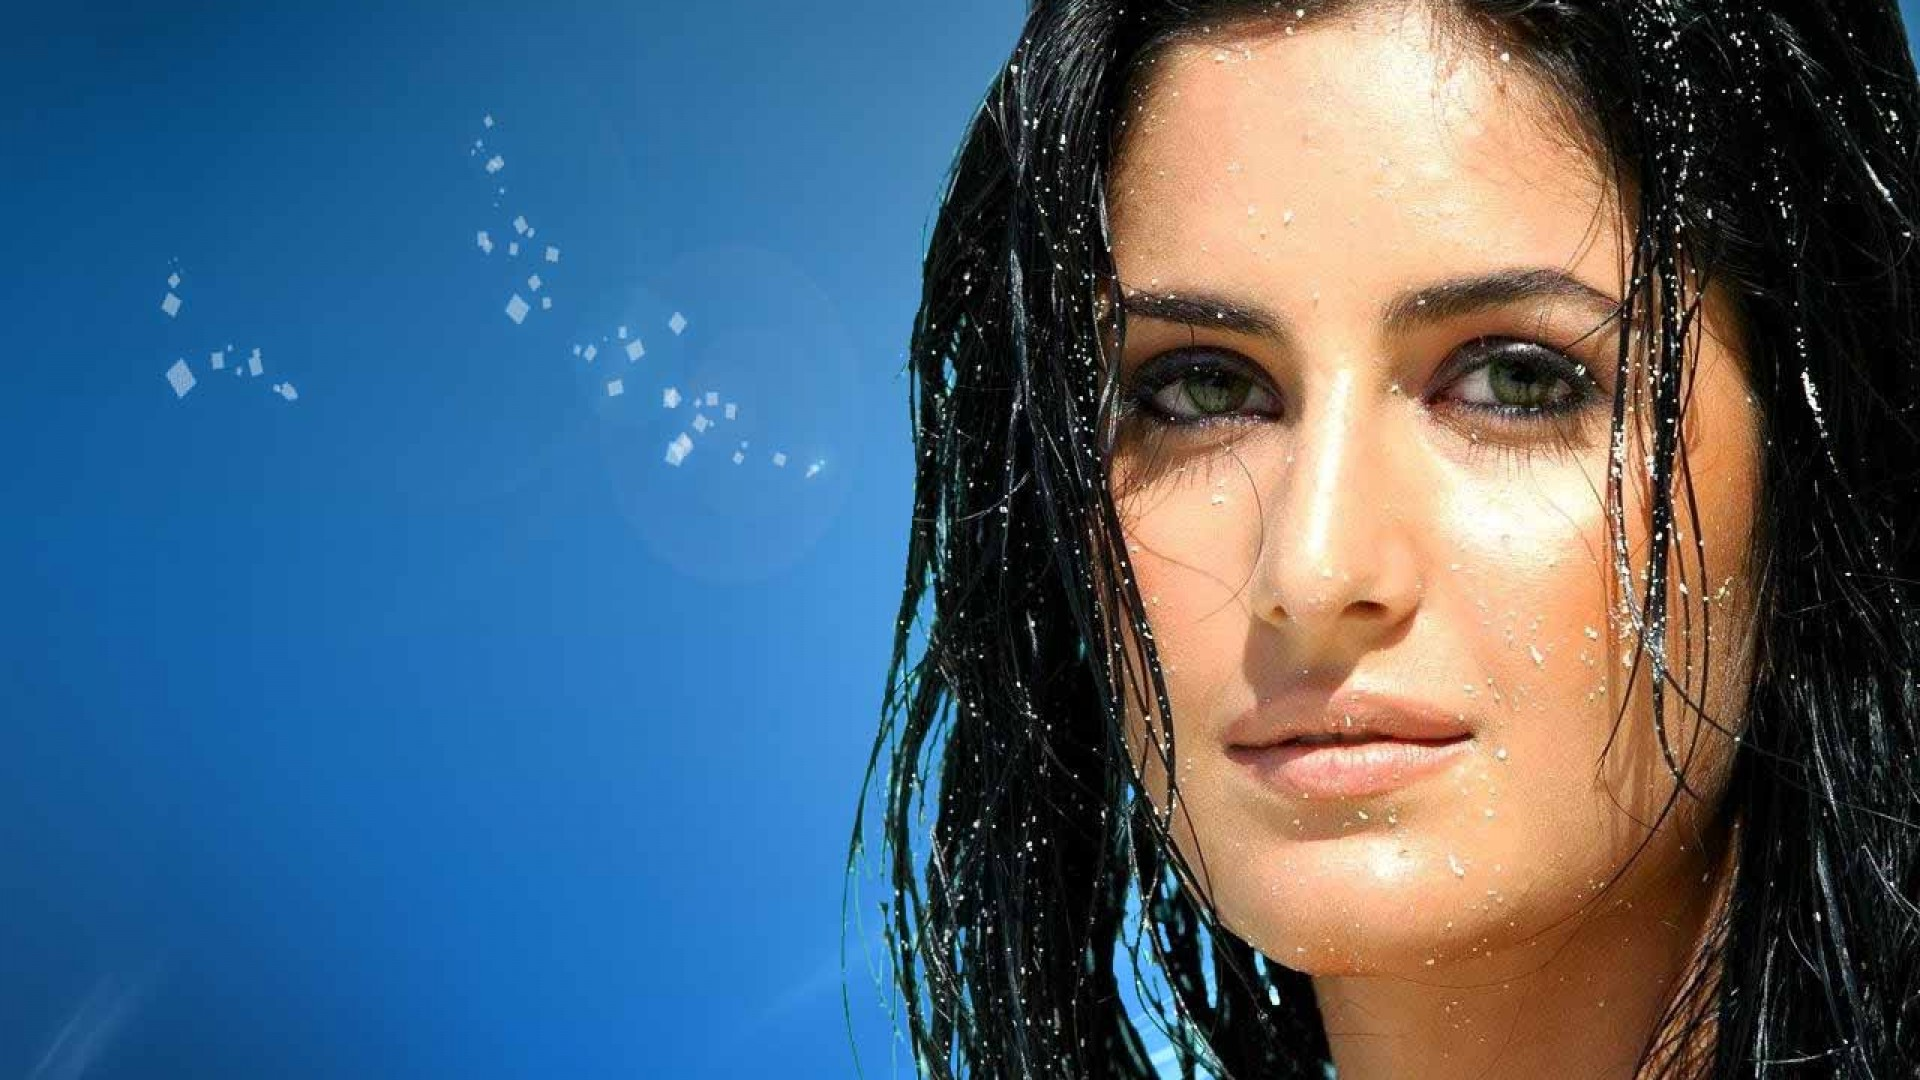 Katrina-Kaif-Hd-WAllpapers